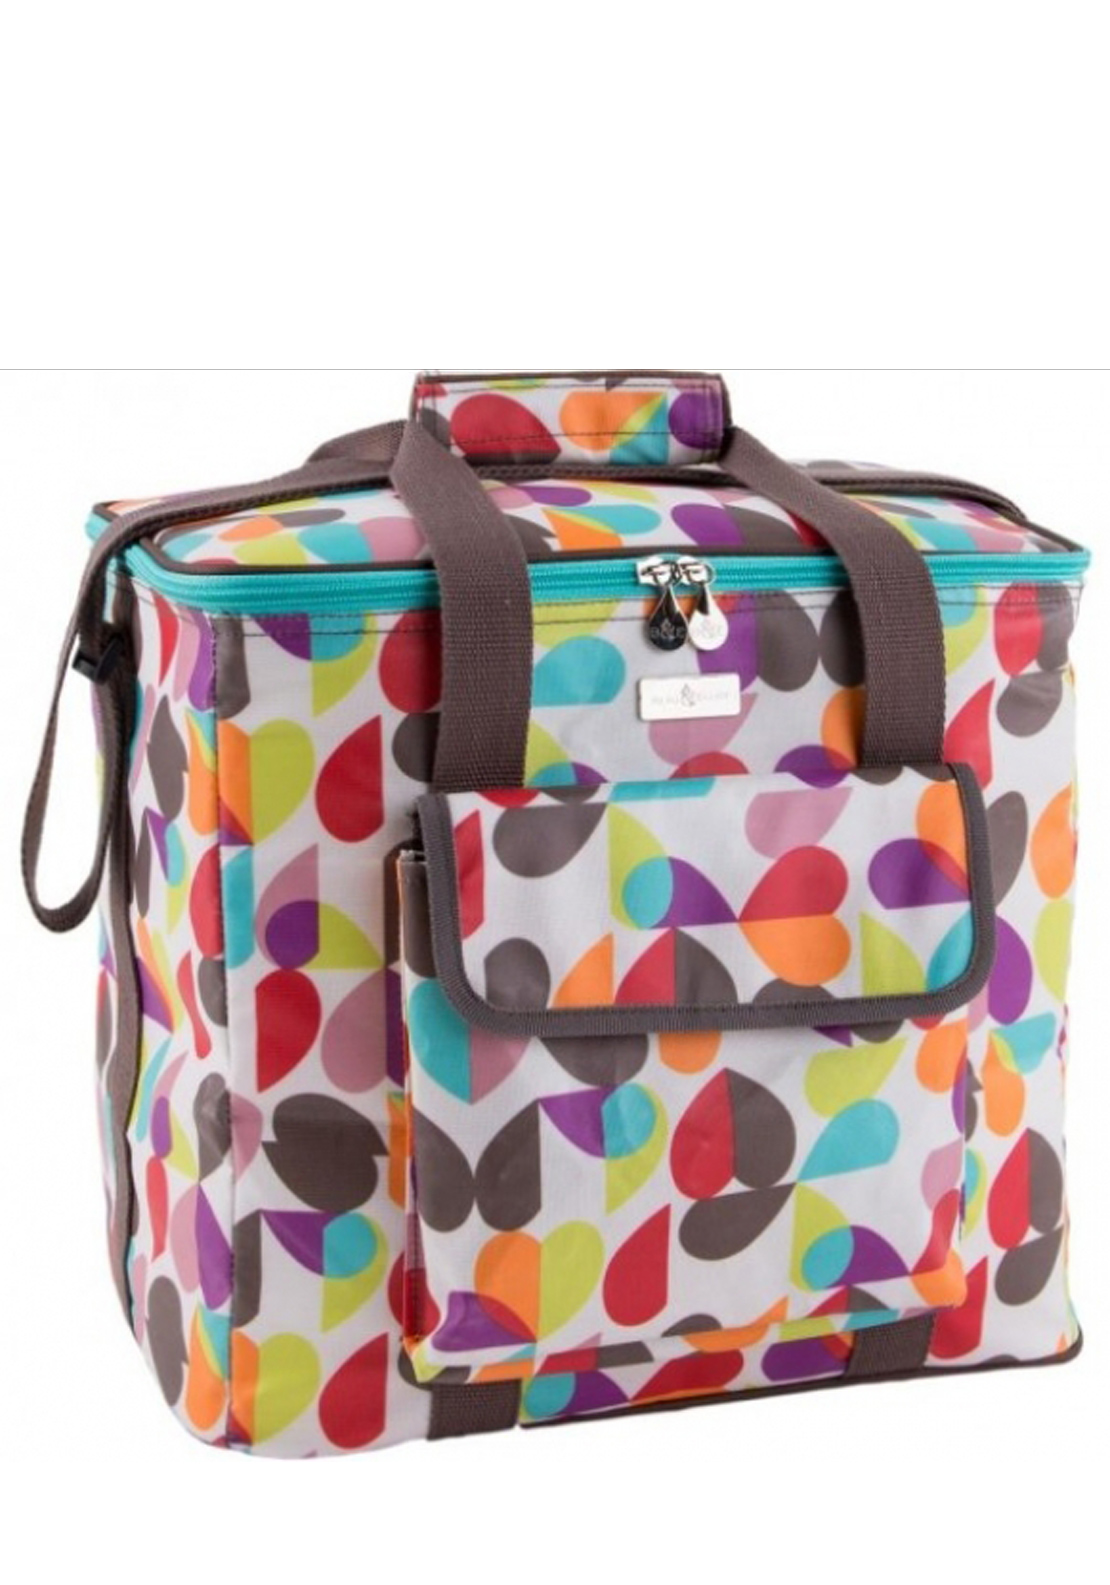 Beau & Elliot Broken Hearted Family Cool Bag, Multi-Coloured